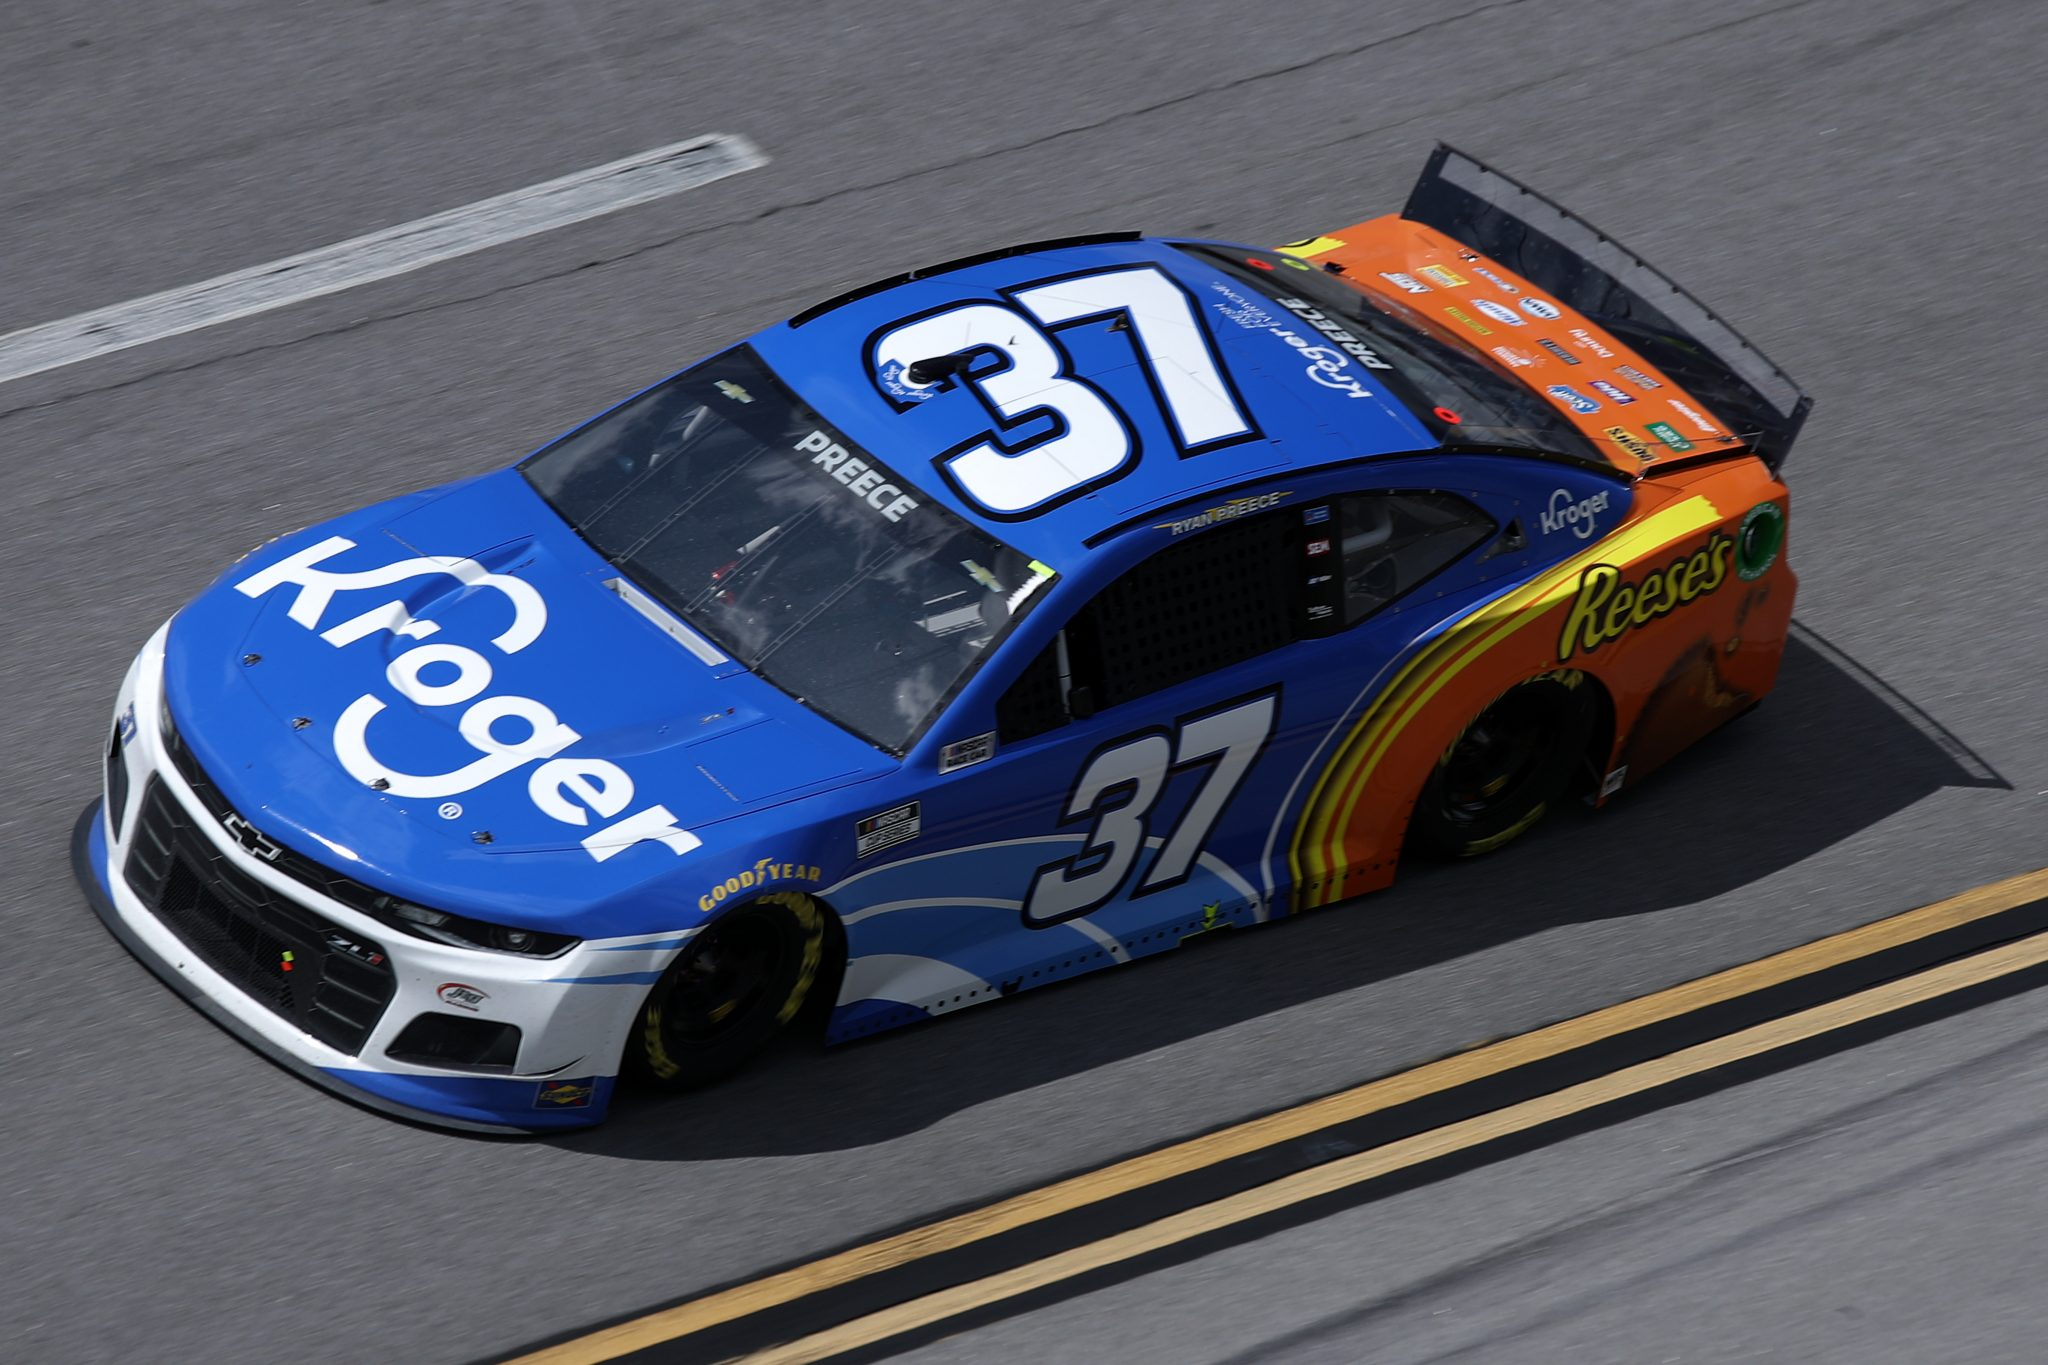 TALLADEGA, ALABAMA - APRIL 25: Ryan Preece, driver of the #37 Kroger/Reese's Chevrolet, drives during the NASCAR Cup Series GEICO 500 at Talladega Superspeedway on April 25, 2021 in Talladega, Alabama. (Photo by Sean Gardner/Getty Images)   Getty Images